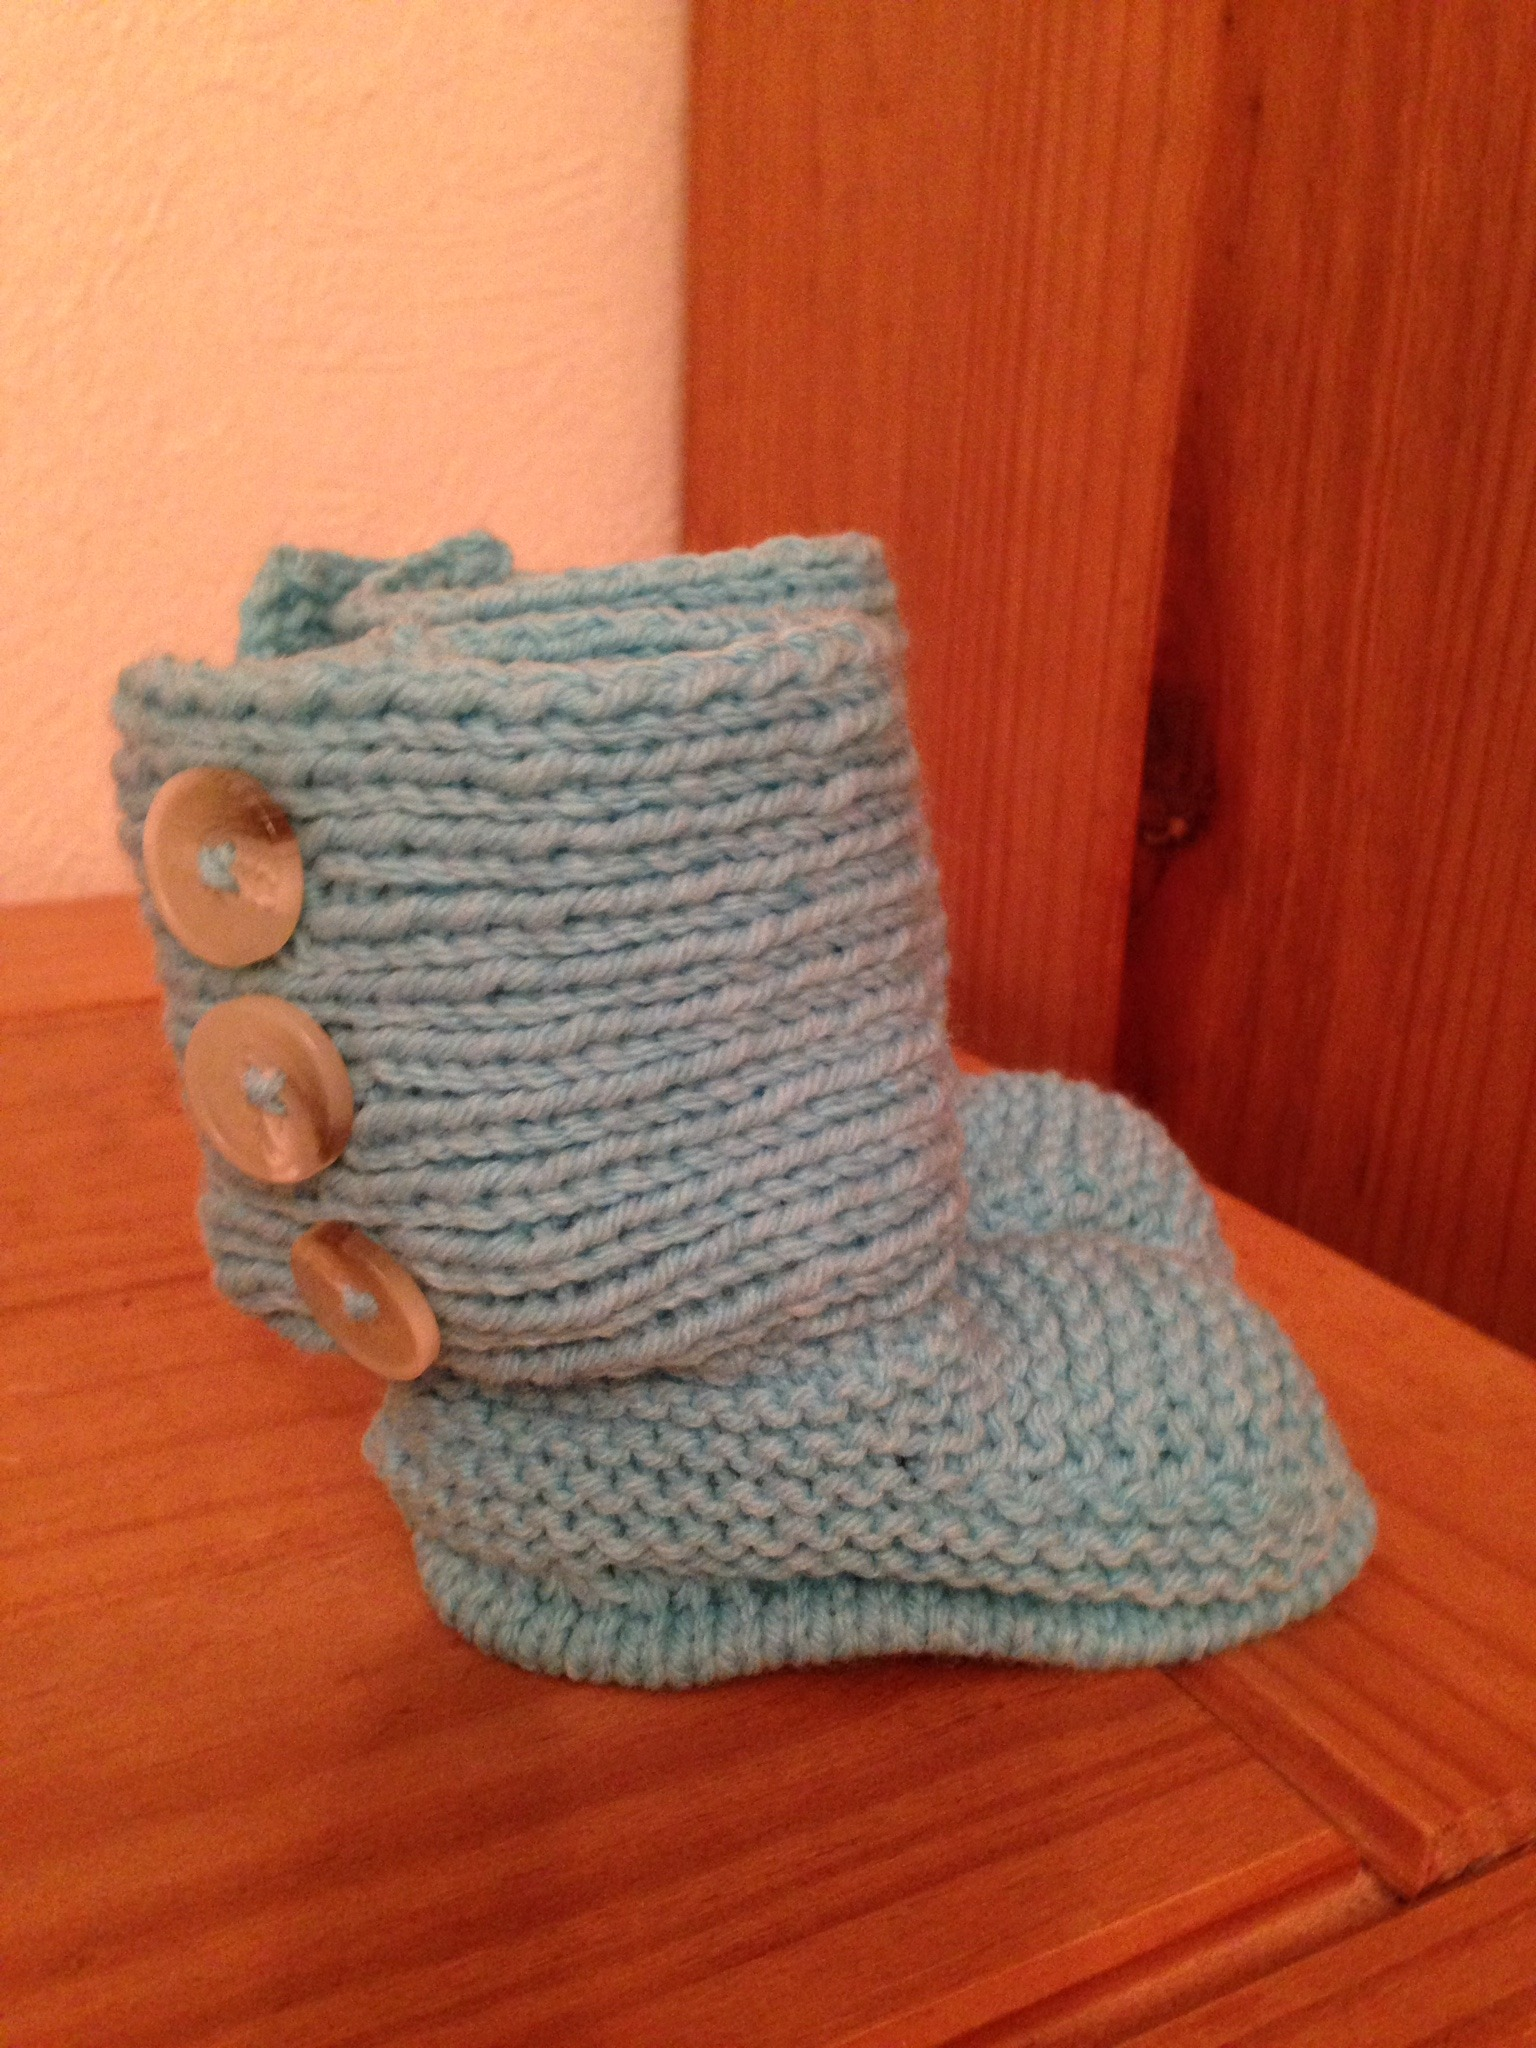 Baby ugg boots knitting project by Mazzie M LoveKnitting